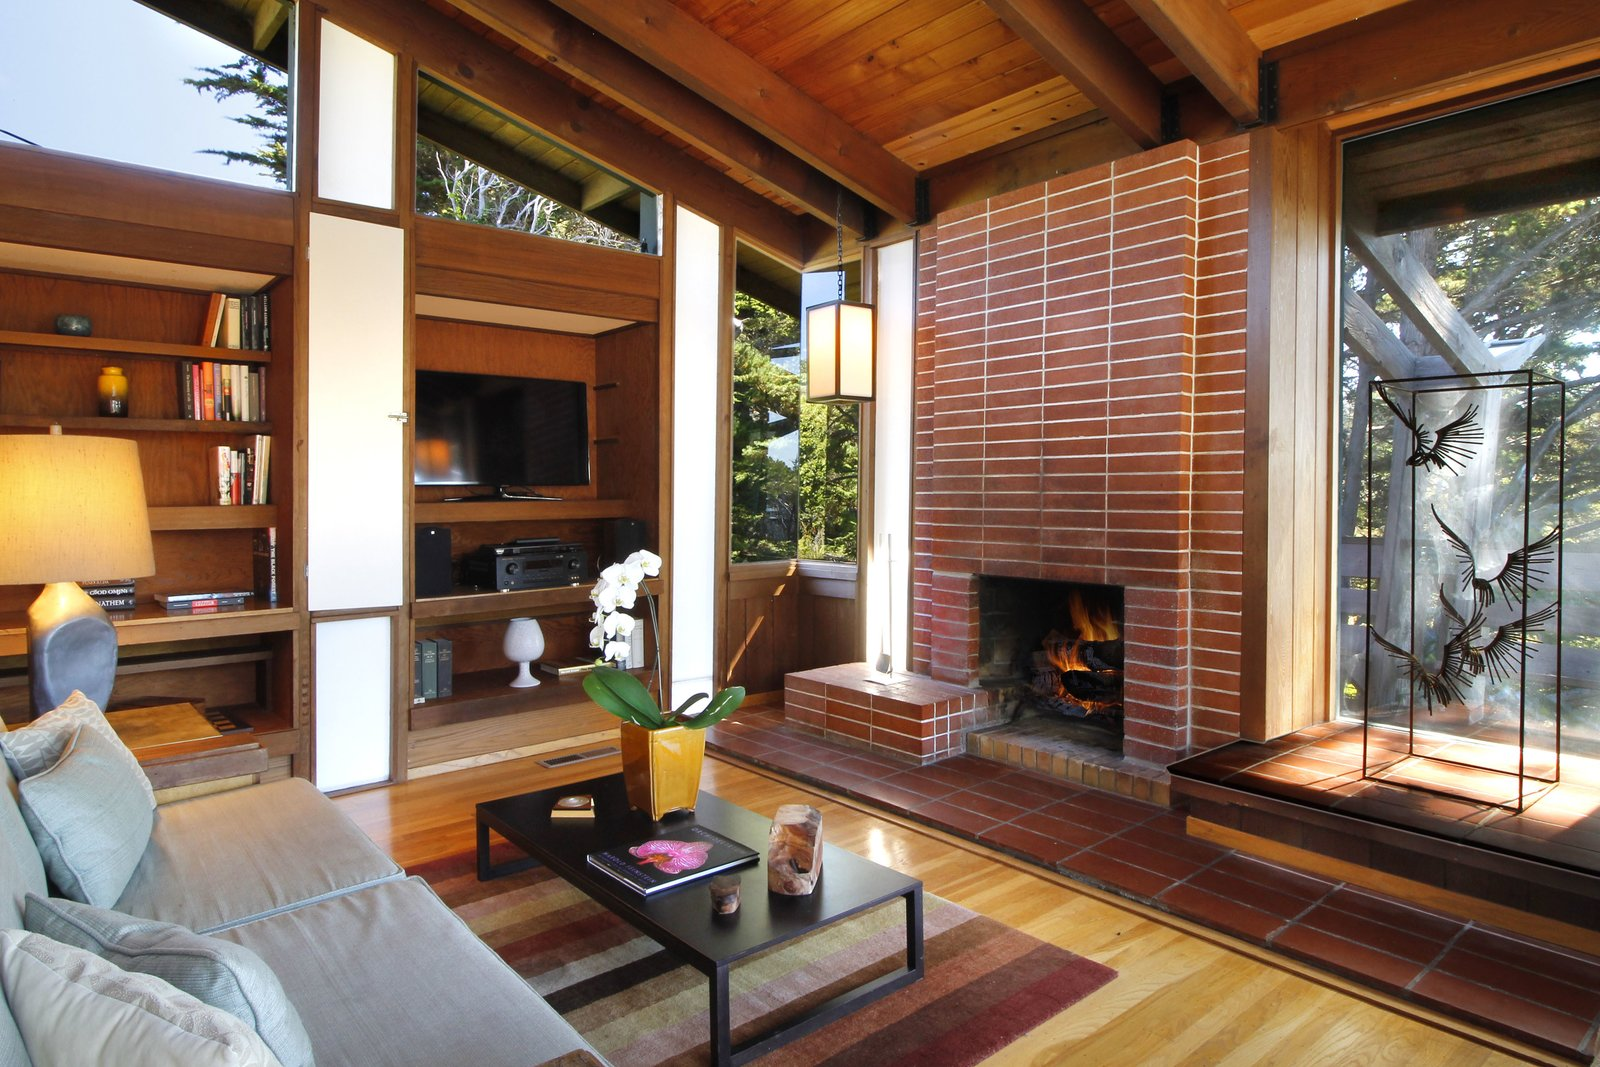 Living Room, Standard Layout Fireplace, Wood Burning Fireplace, Table Lighting, Pendant Lighting, Medium Hardwood Floor, Rug Floor, Coffee Tables, Sofa, and Shelves  Photo 10 of 11 in A Perfectly Preserved Midcentury Pad in Northern California Asks $1.975M